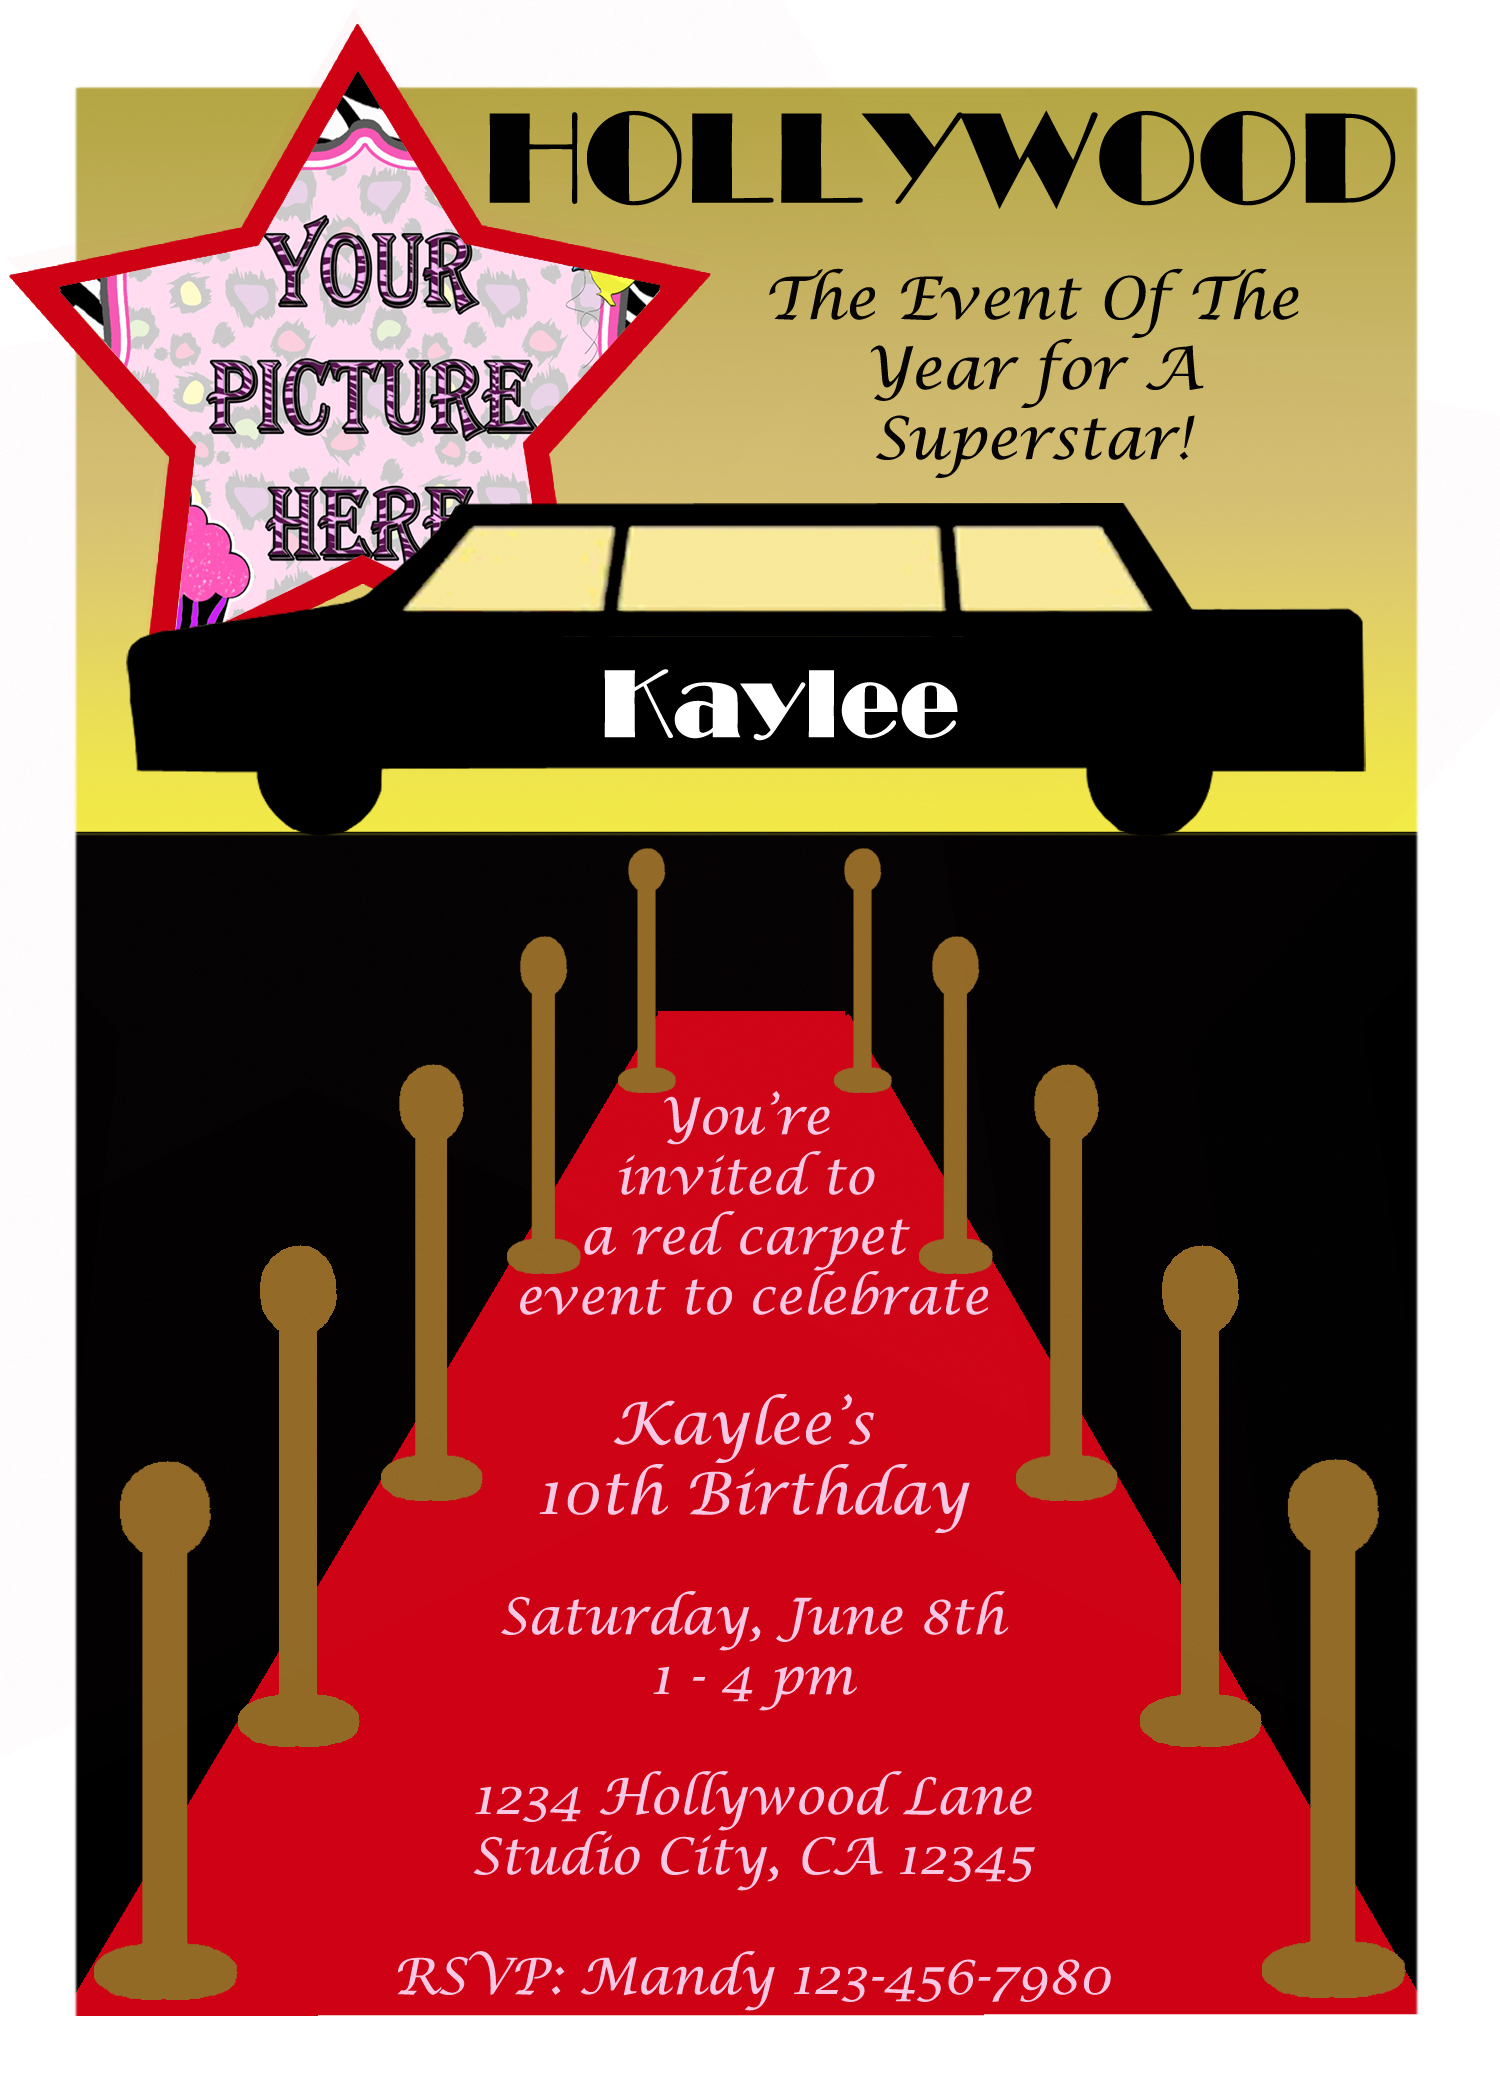 Hollywood Walk of Fame Invitation w/ Picture (printable diy) · Dream ...